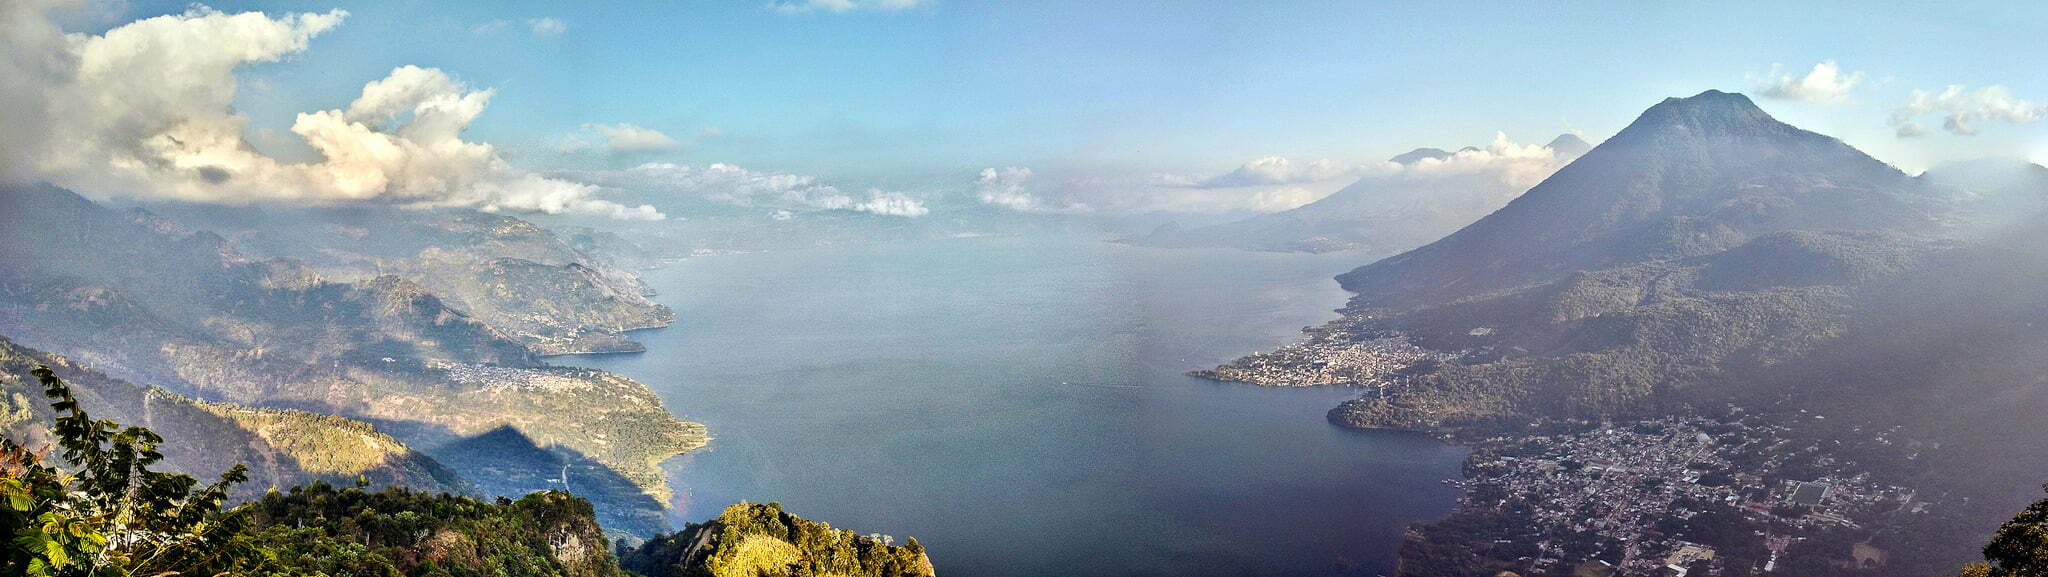 Lago de Atitlán, Flickr user Jeff P